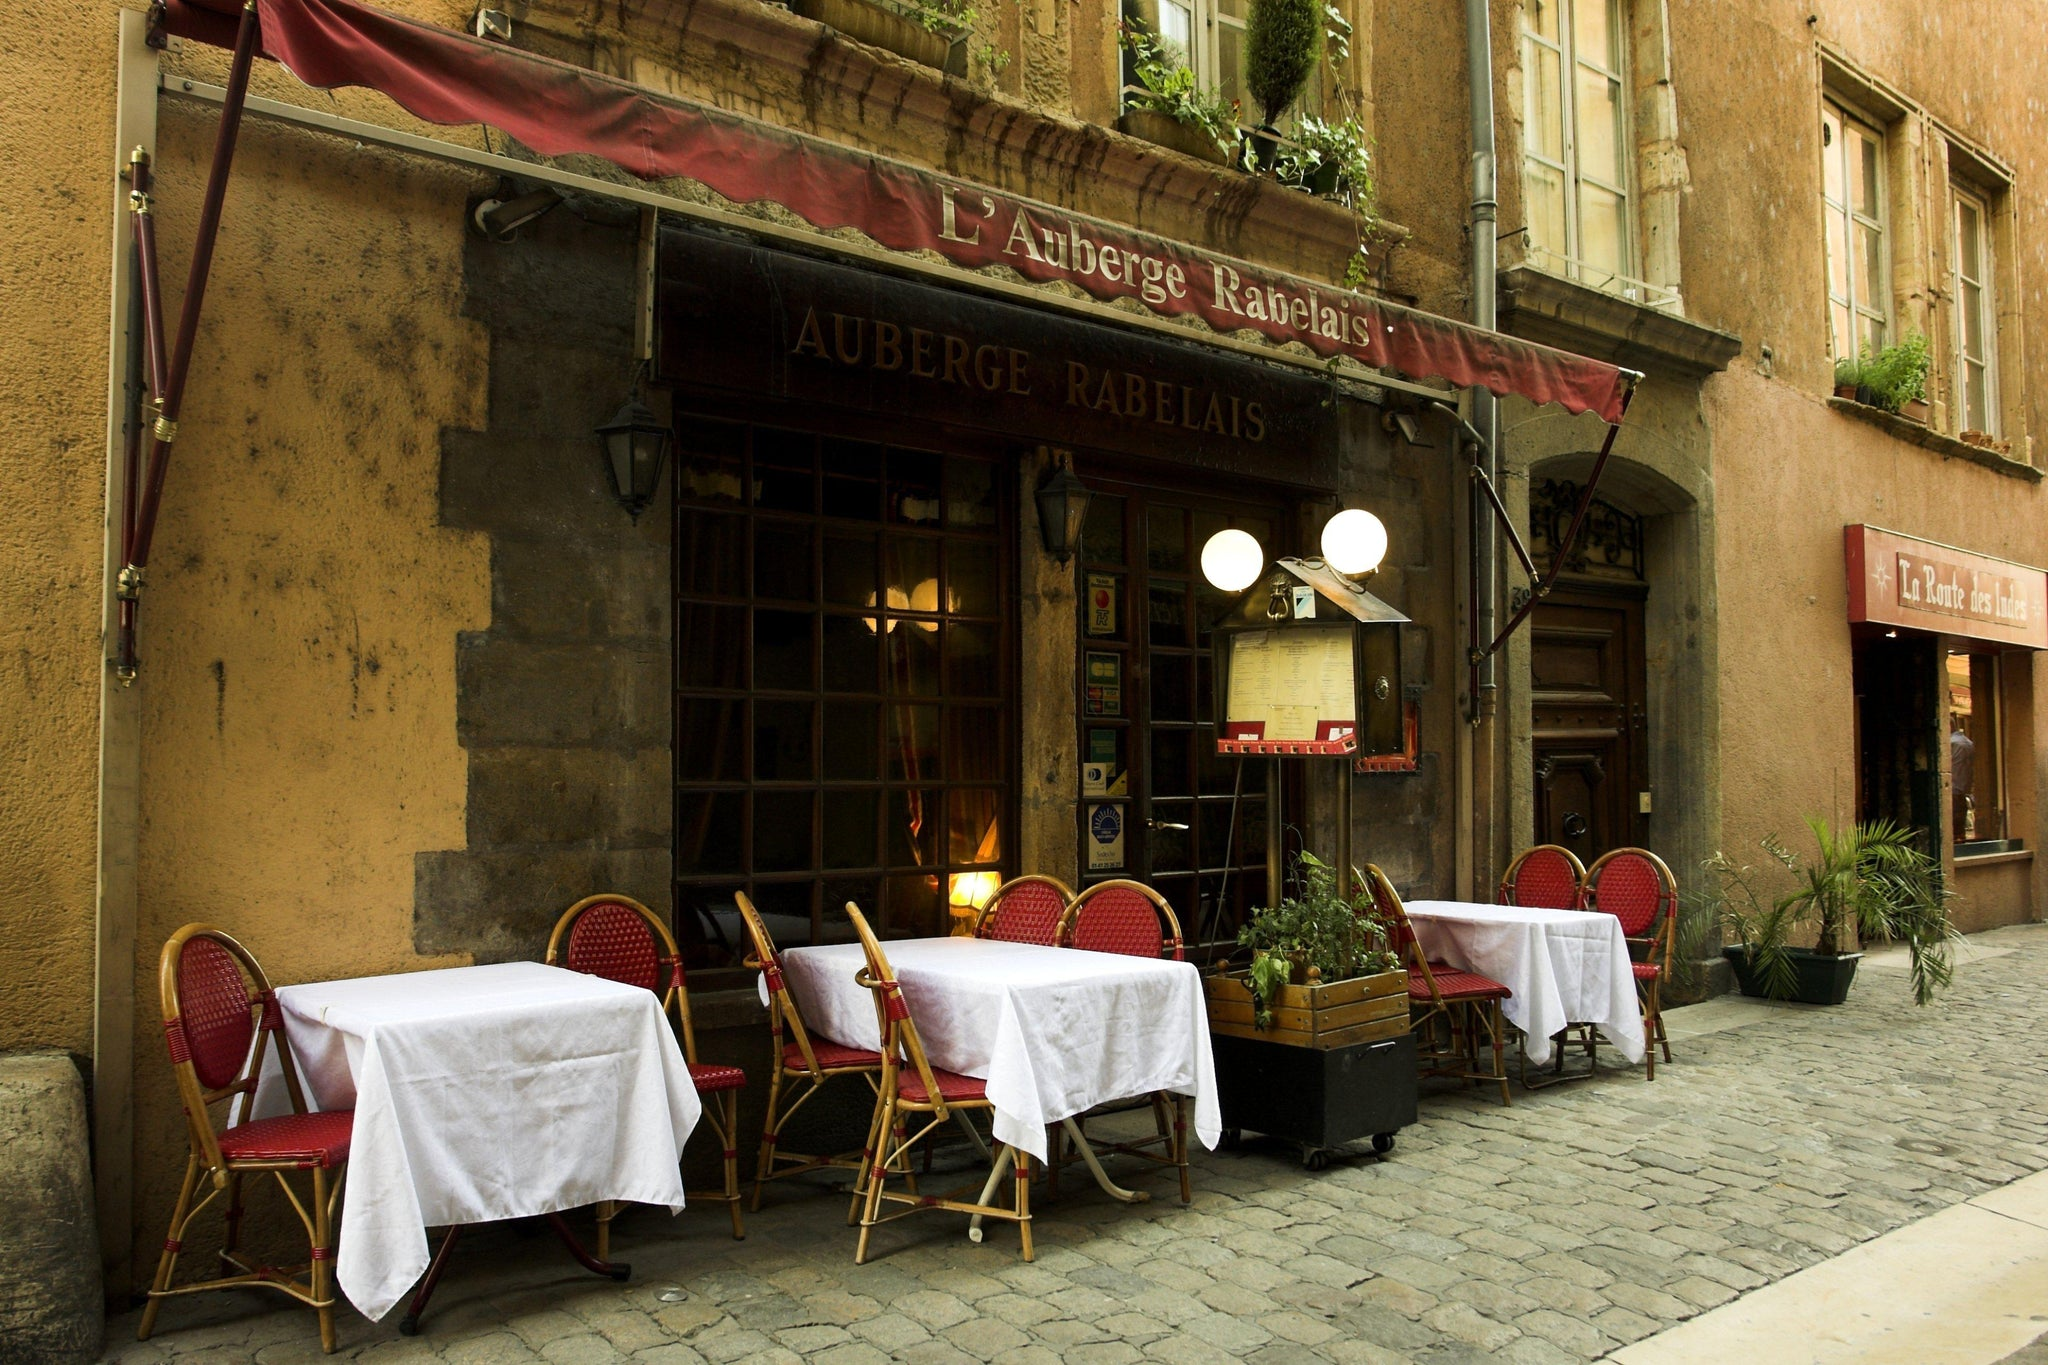 Sidewalk Cafe, France